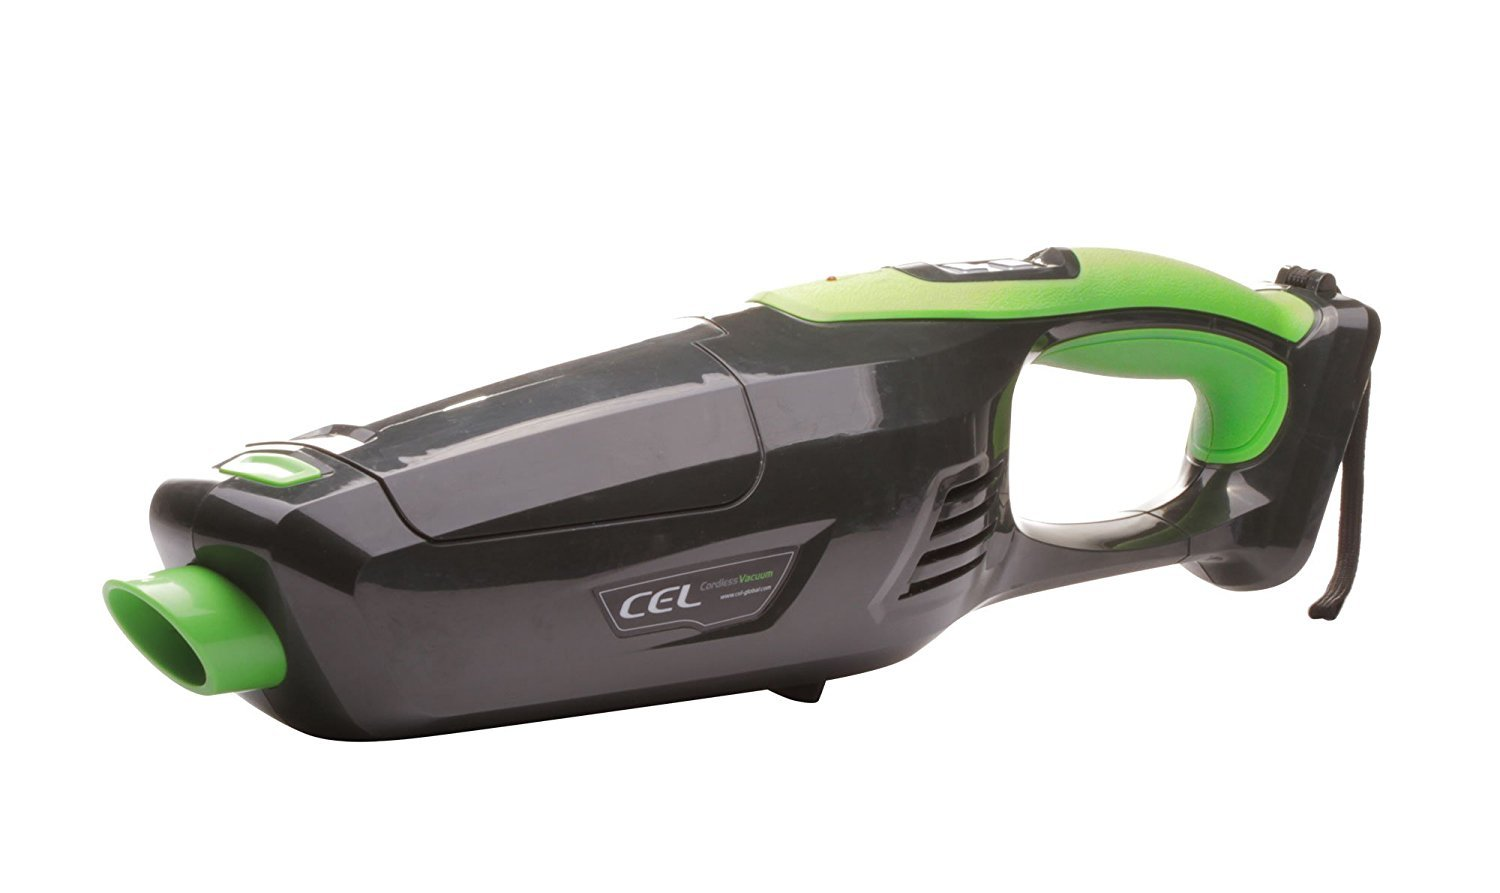 CEL AP08 Oscillating Multi-Tool Cutting Pack